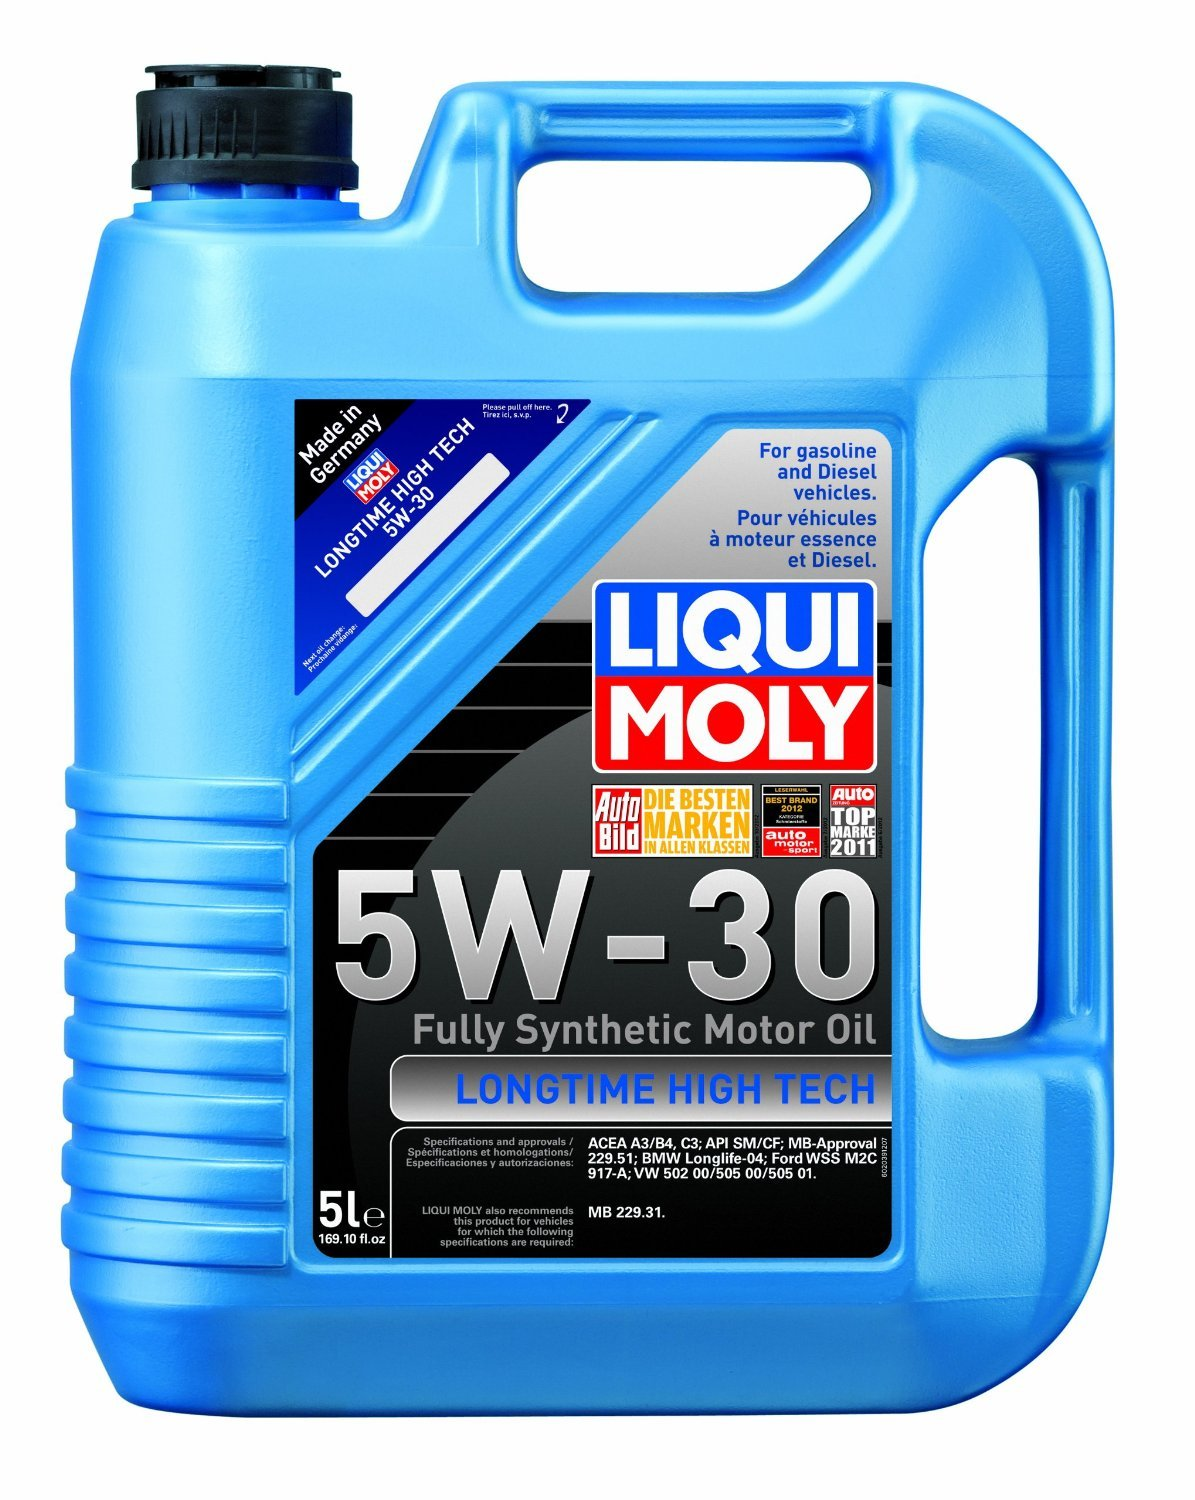 Liqui Moly (2039-4PK) Longtime High Tech 5W-30 Synthetic Motor Oil - 5 Liter, (Pack of 4) by Liqui Moly